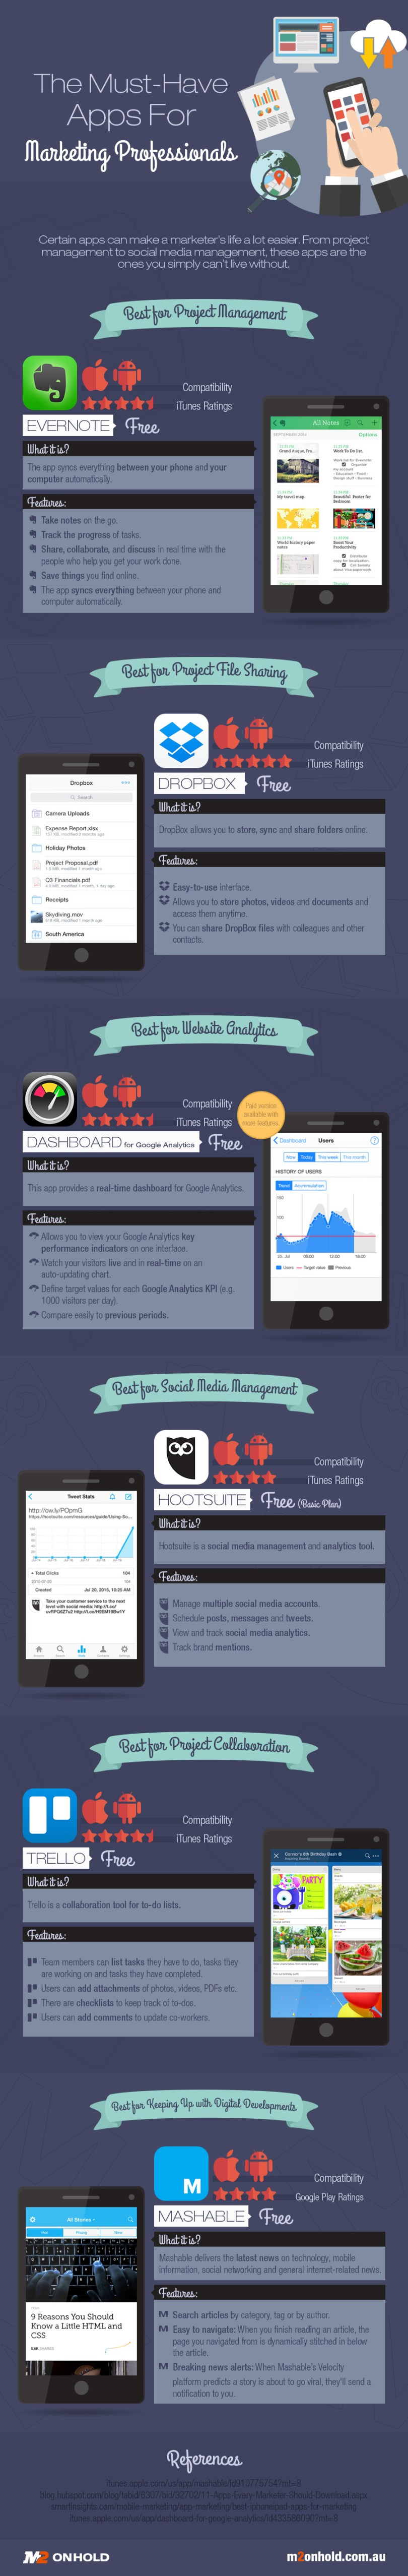 must_have_apps_for_marketing_professionals